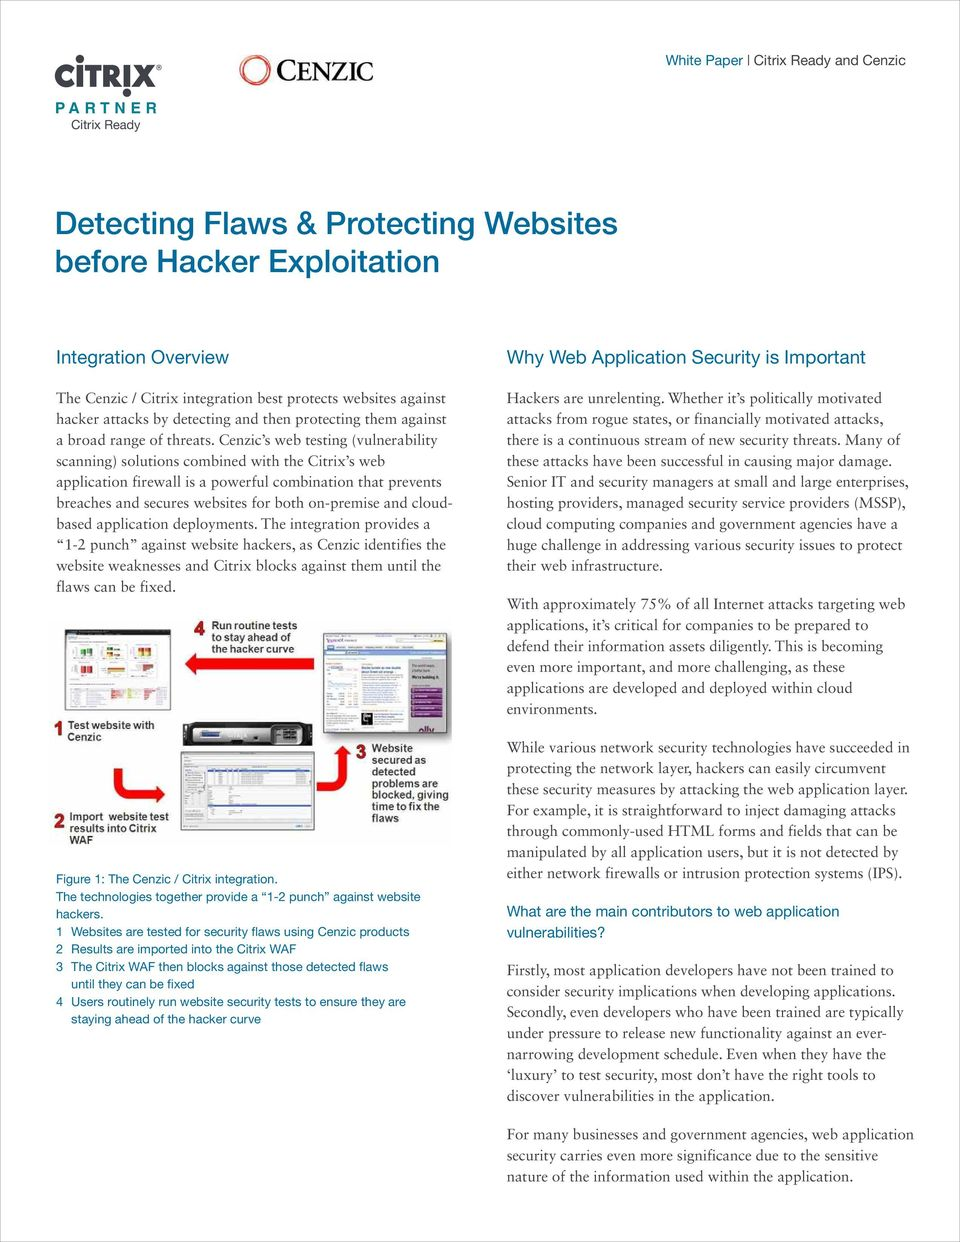 Cenzic s web testing (vulnerability scanning) solutions combined with the Citrix s web application firewall is a powerful combination that prevents breaches and secures websites for both on-premise